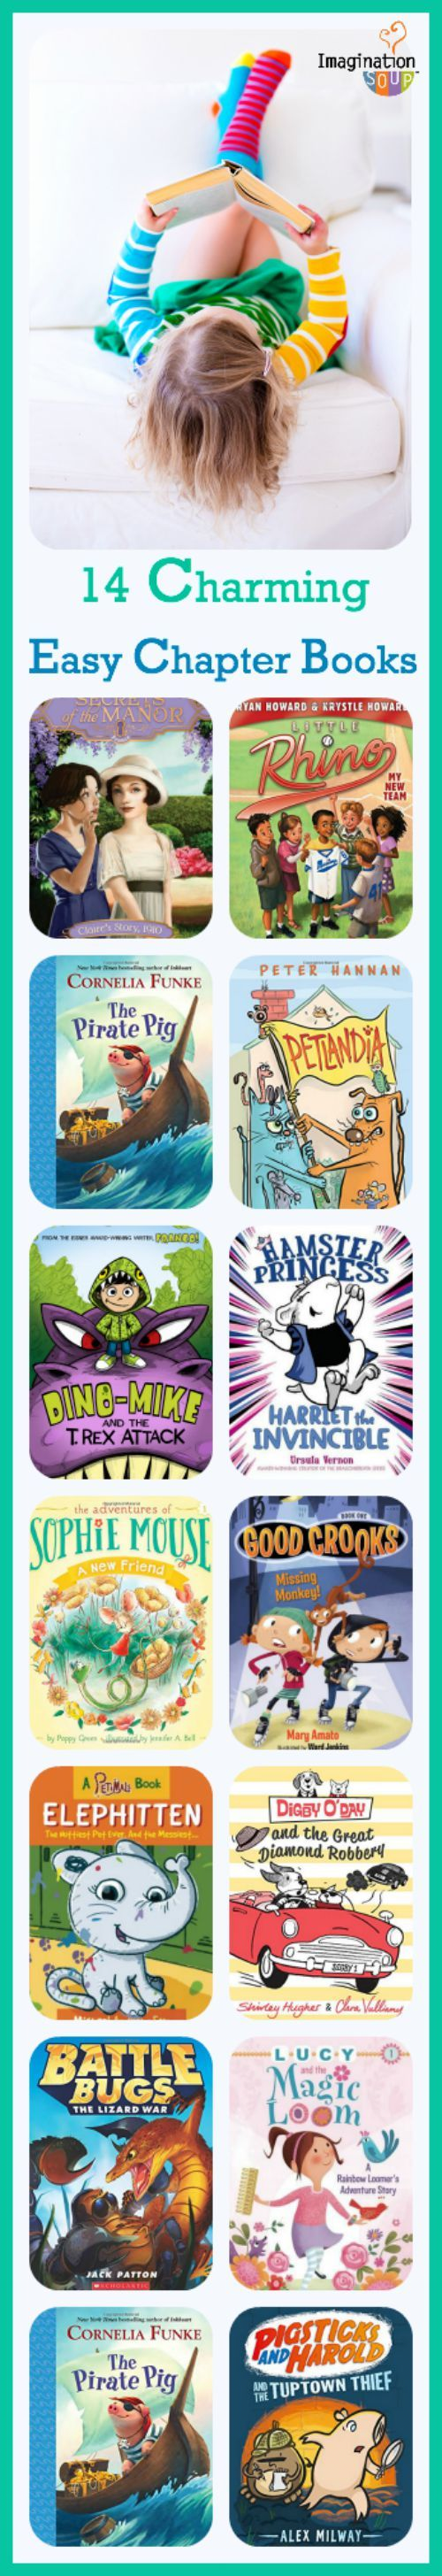 Worksheet Books 7 Year Old 10 ideas about 7 year olds on pinterest read aloud books 14 new charming easy chapter book reviews recommendations love these lists from imagination soup